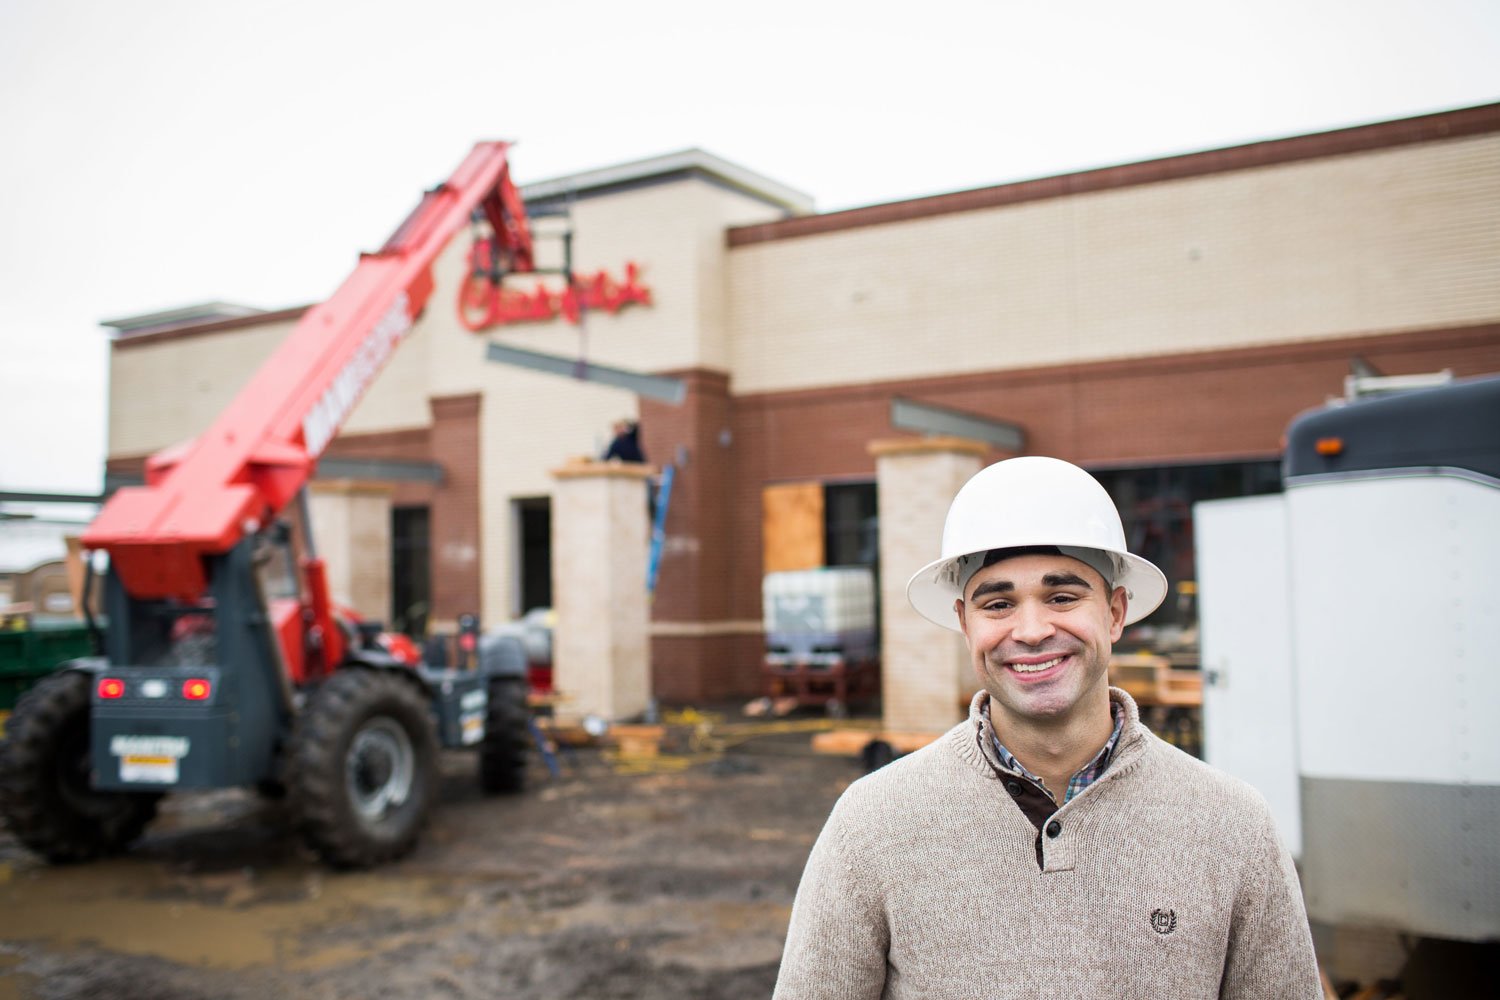 Chick-fil-A owner Brian Davis at his store construction site